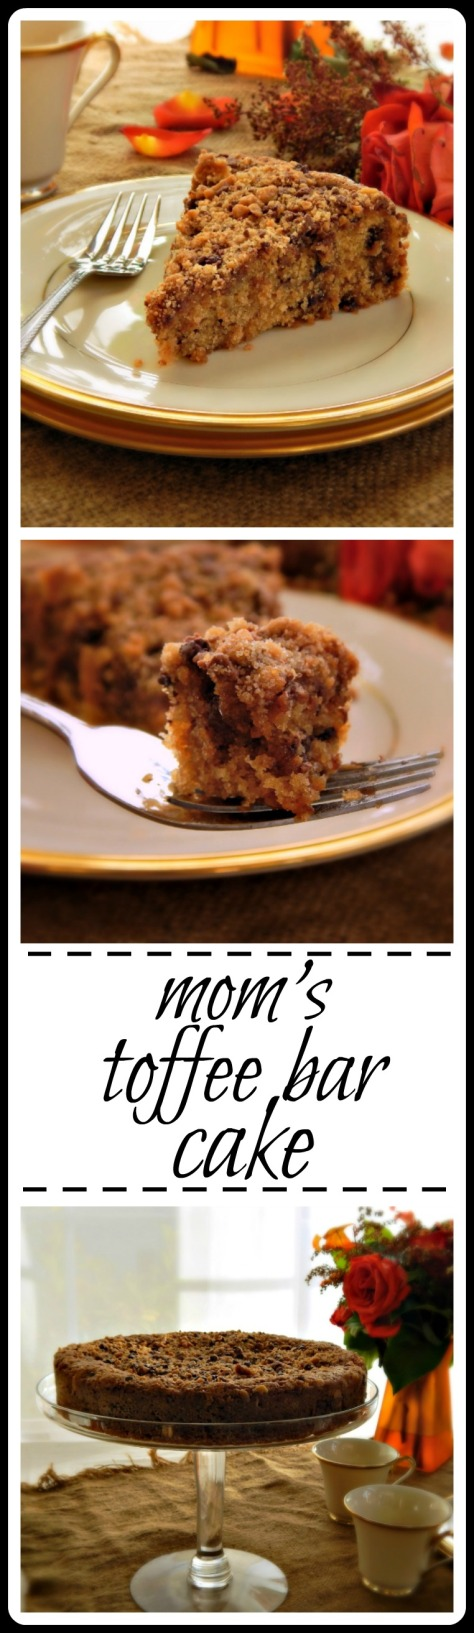 Mom's Toffee Bar Cake: I did tinker just a bit, sorry Mom! I added MORE toffee & put it in a round pan.